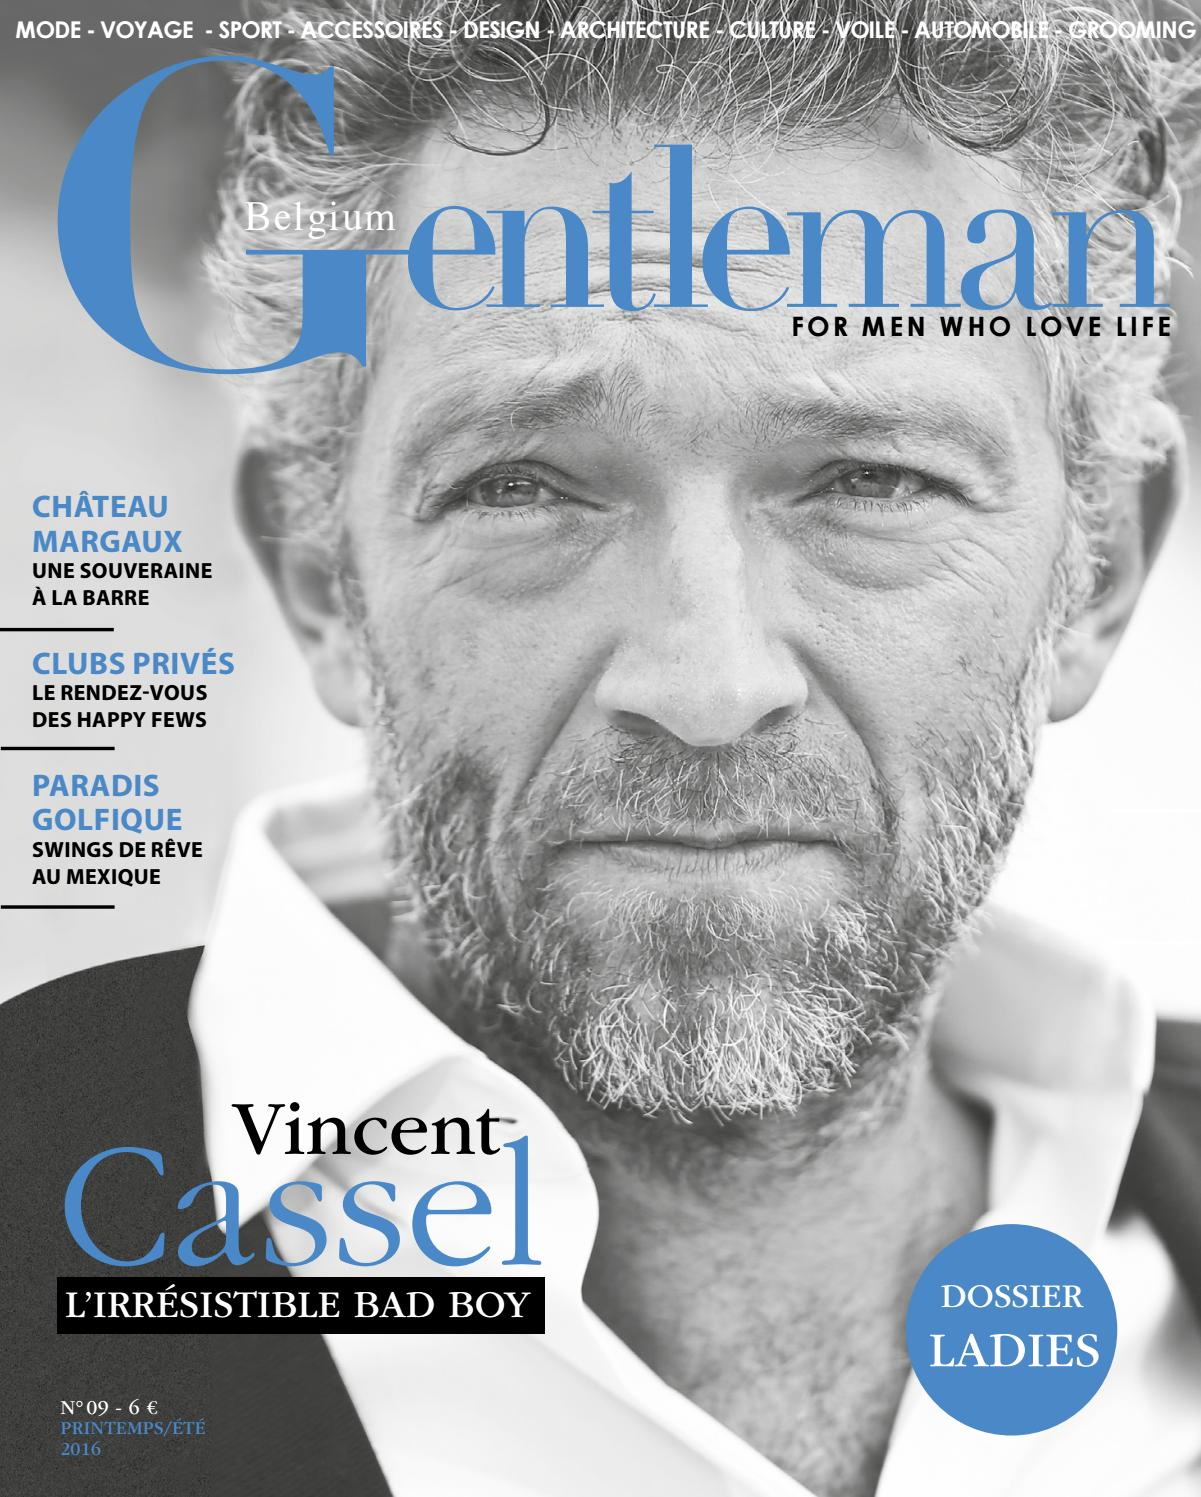 c0c05117530e4d Gentleman 09 FR by gentlemanmag.be - issuu